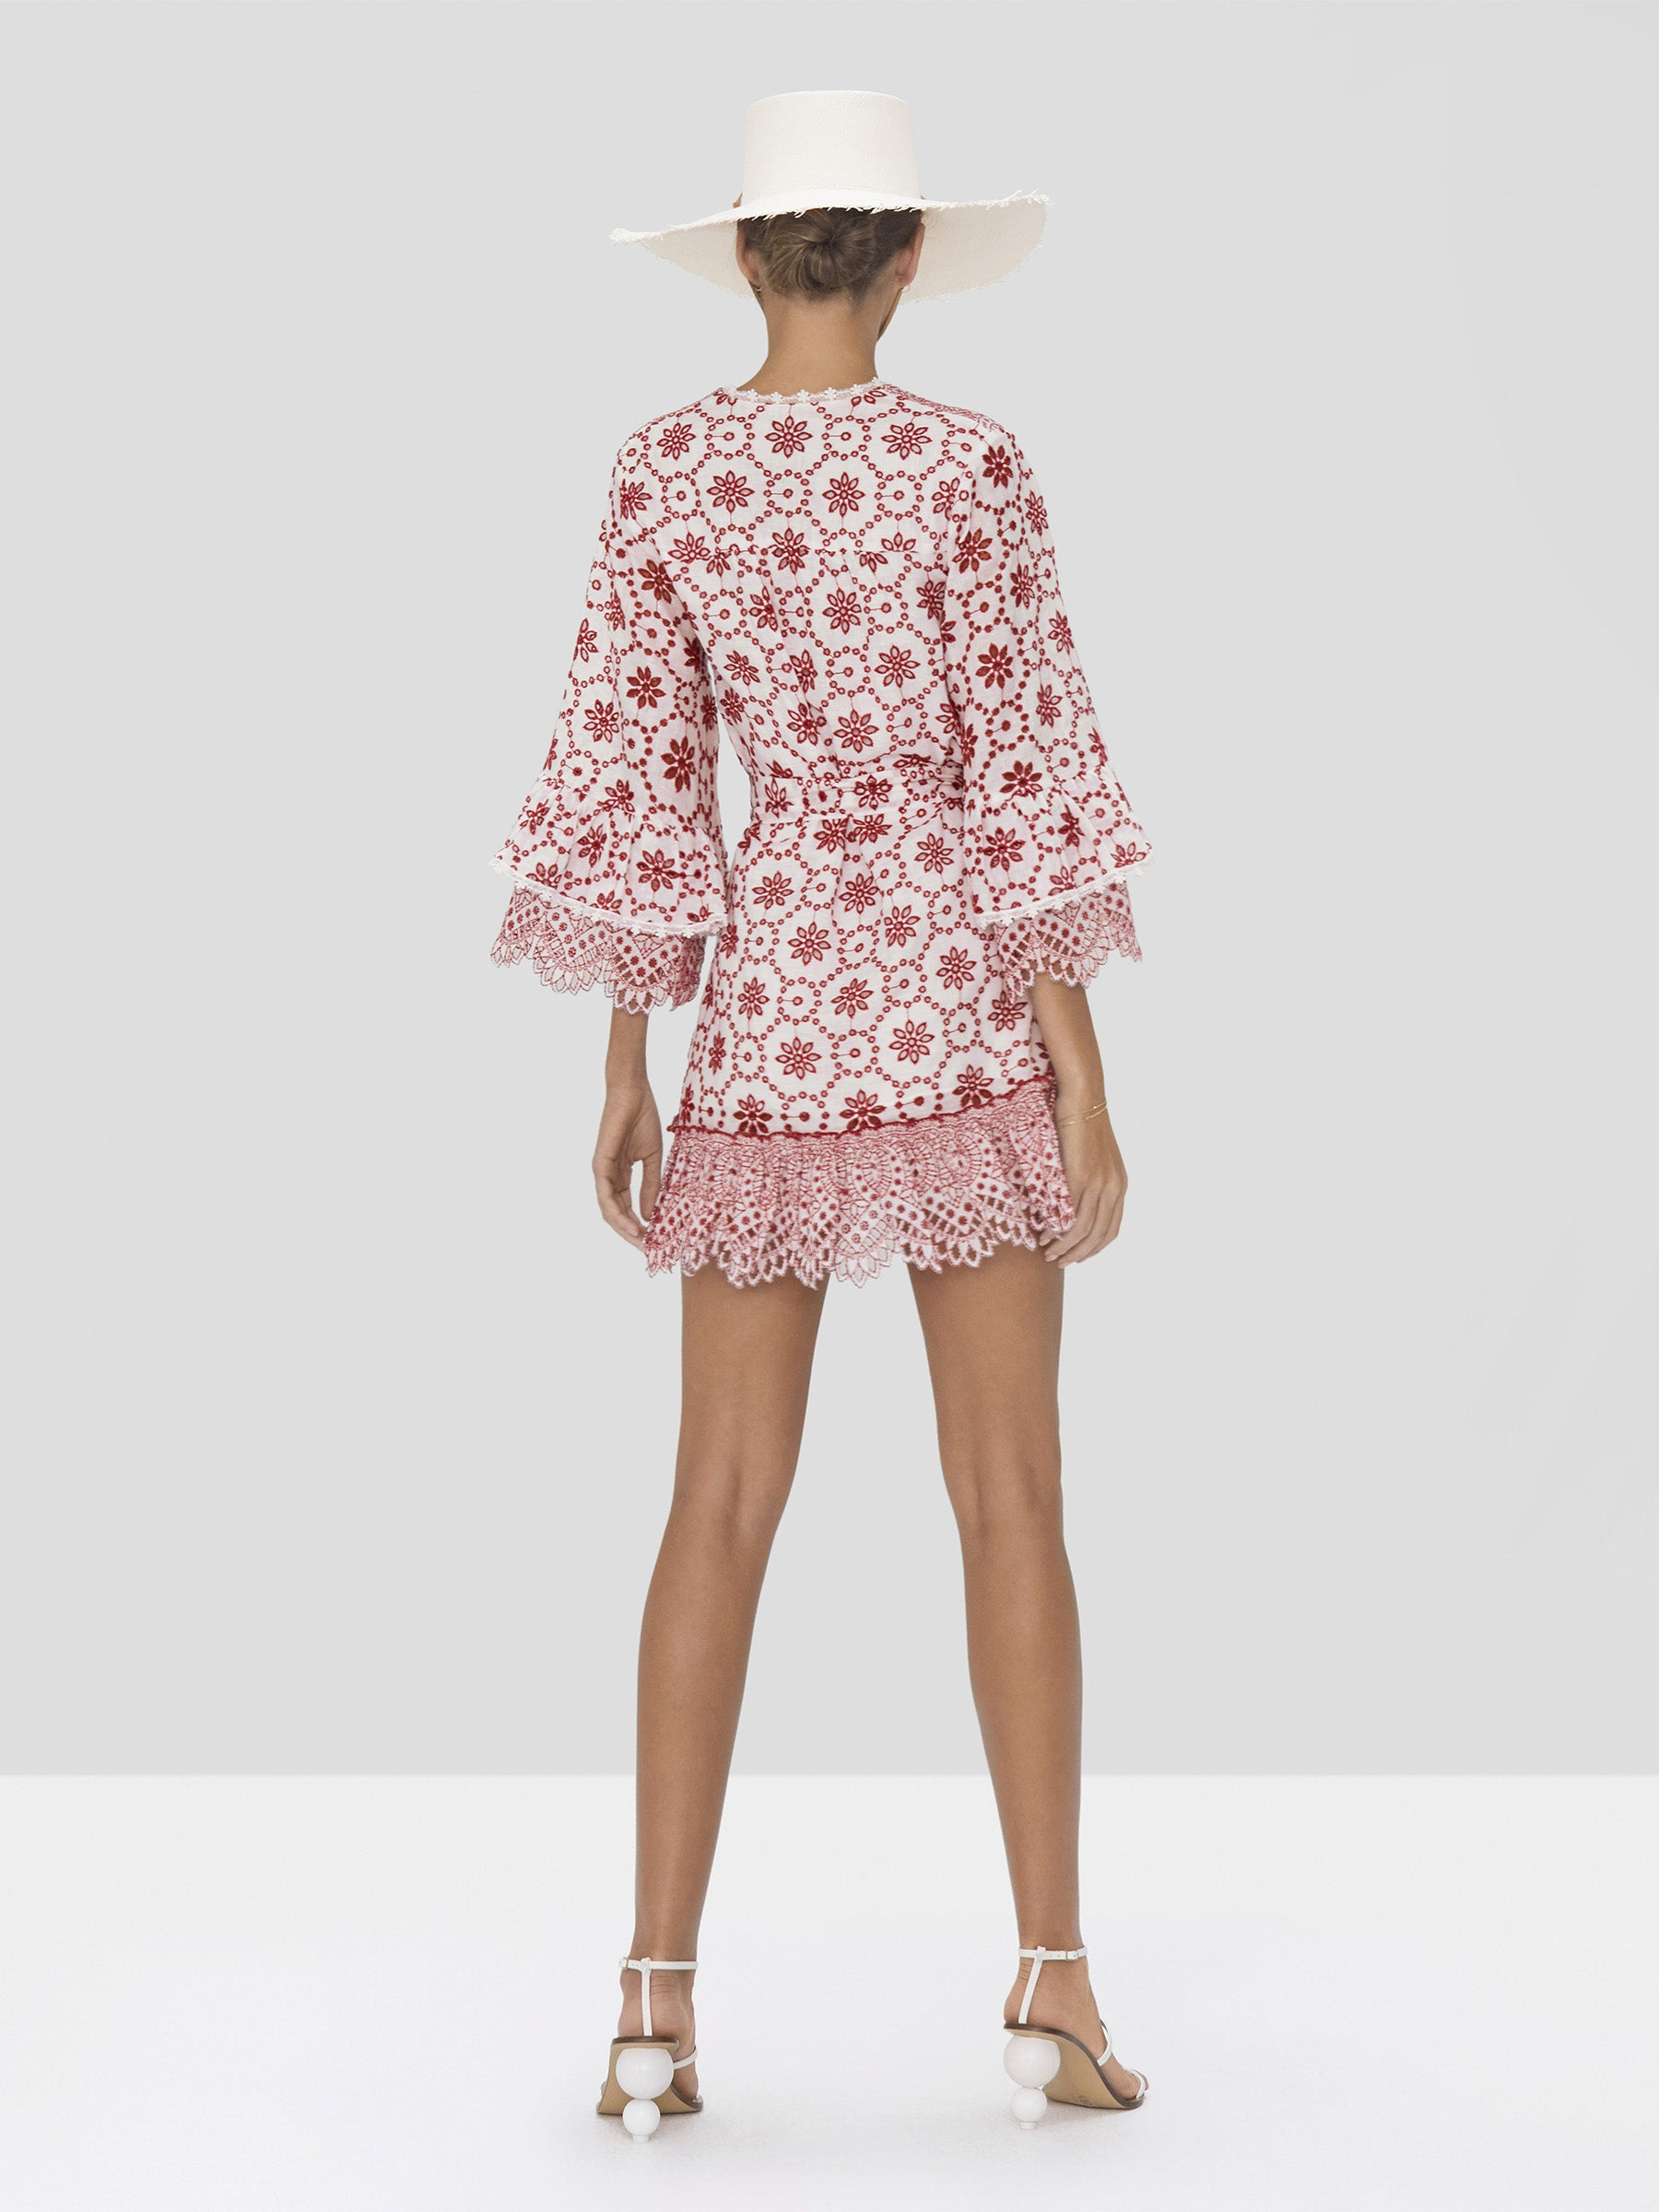 Alexis Gladys Dress in Berry Eyelet Embroidery from Spring Summer 2020 - Rear View